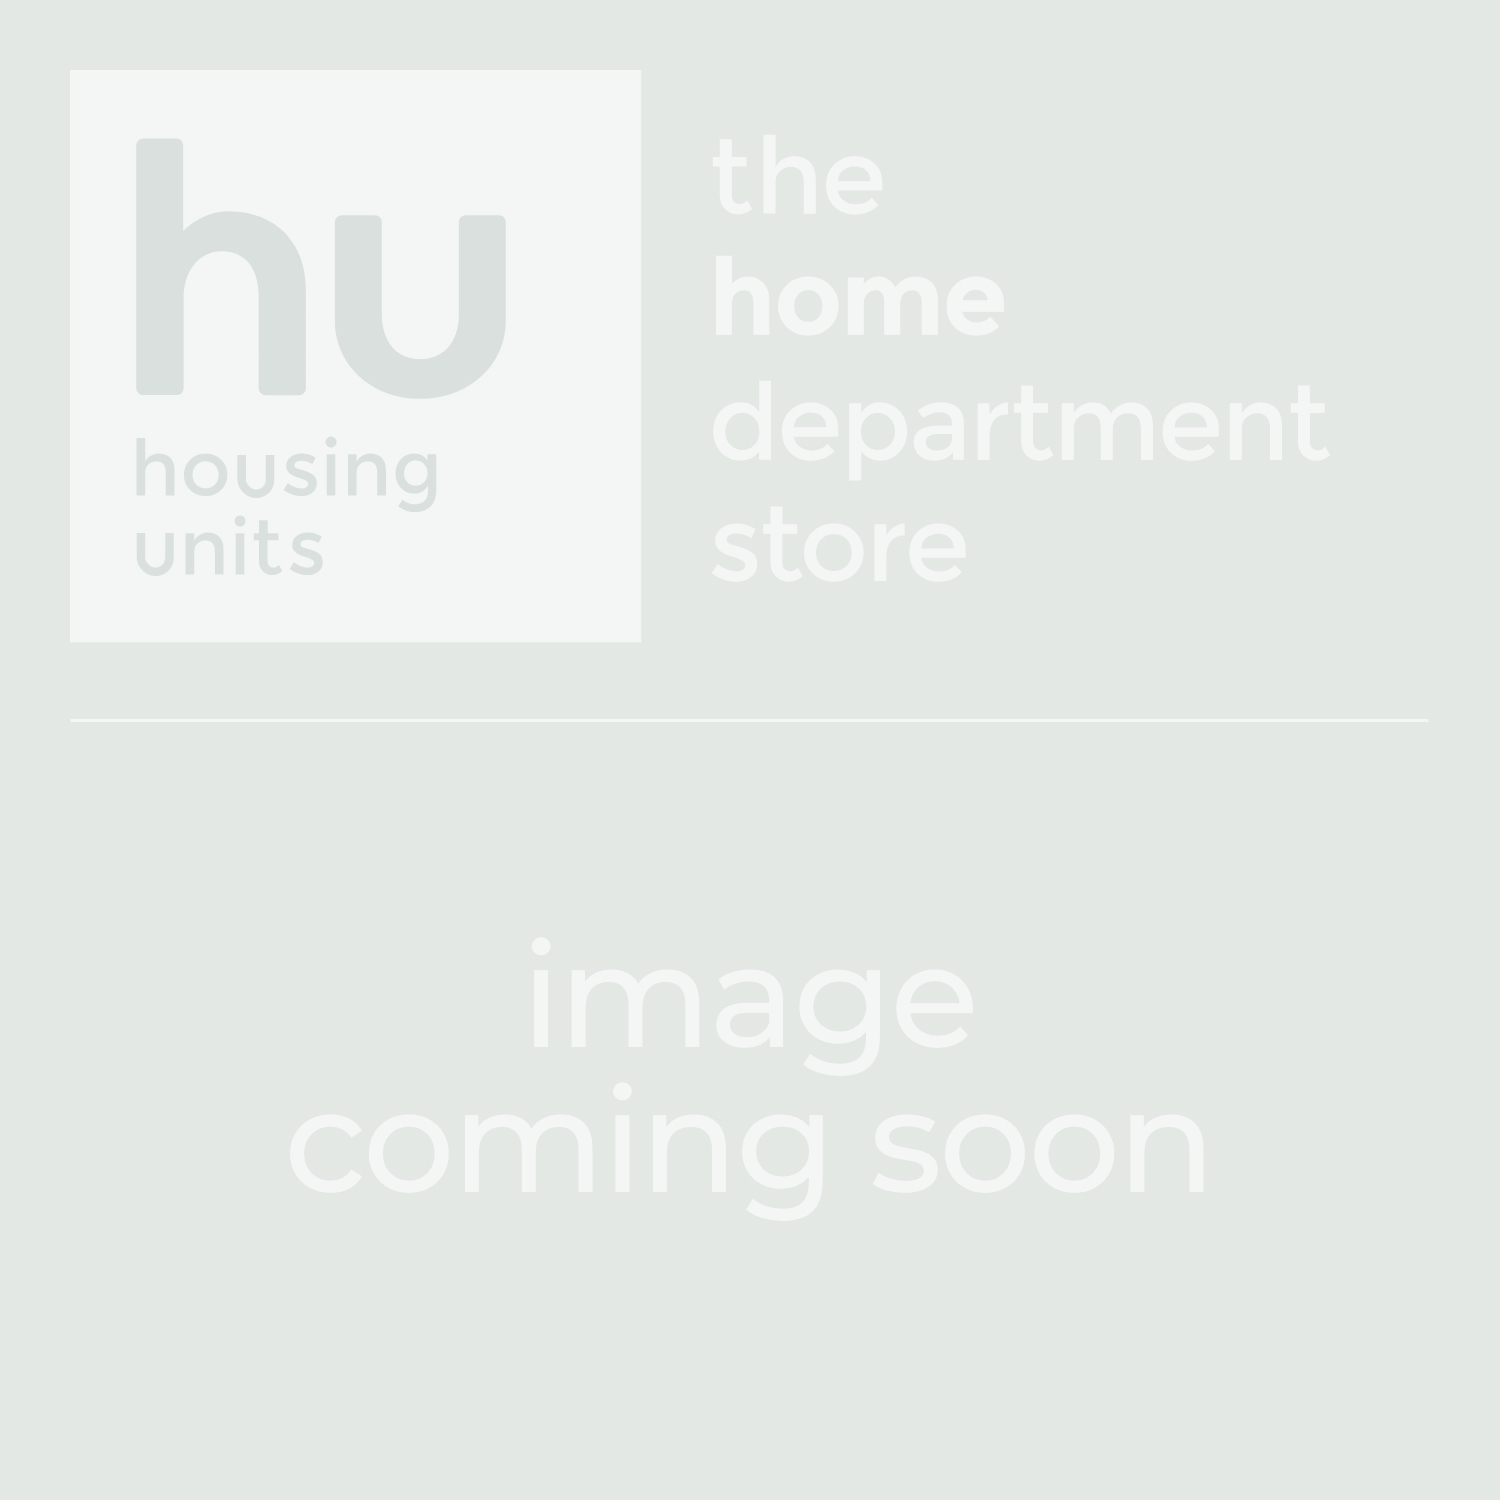 Chollerton Anthracite and Chrome Inset Electric Fire - Lifestyle | Housing Units